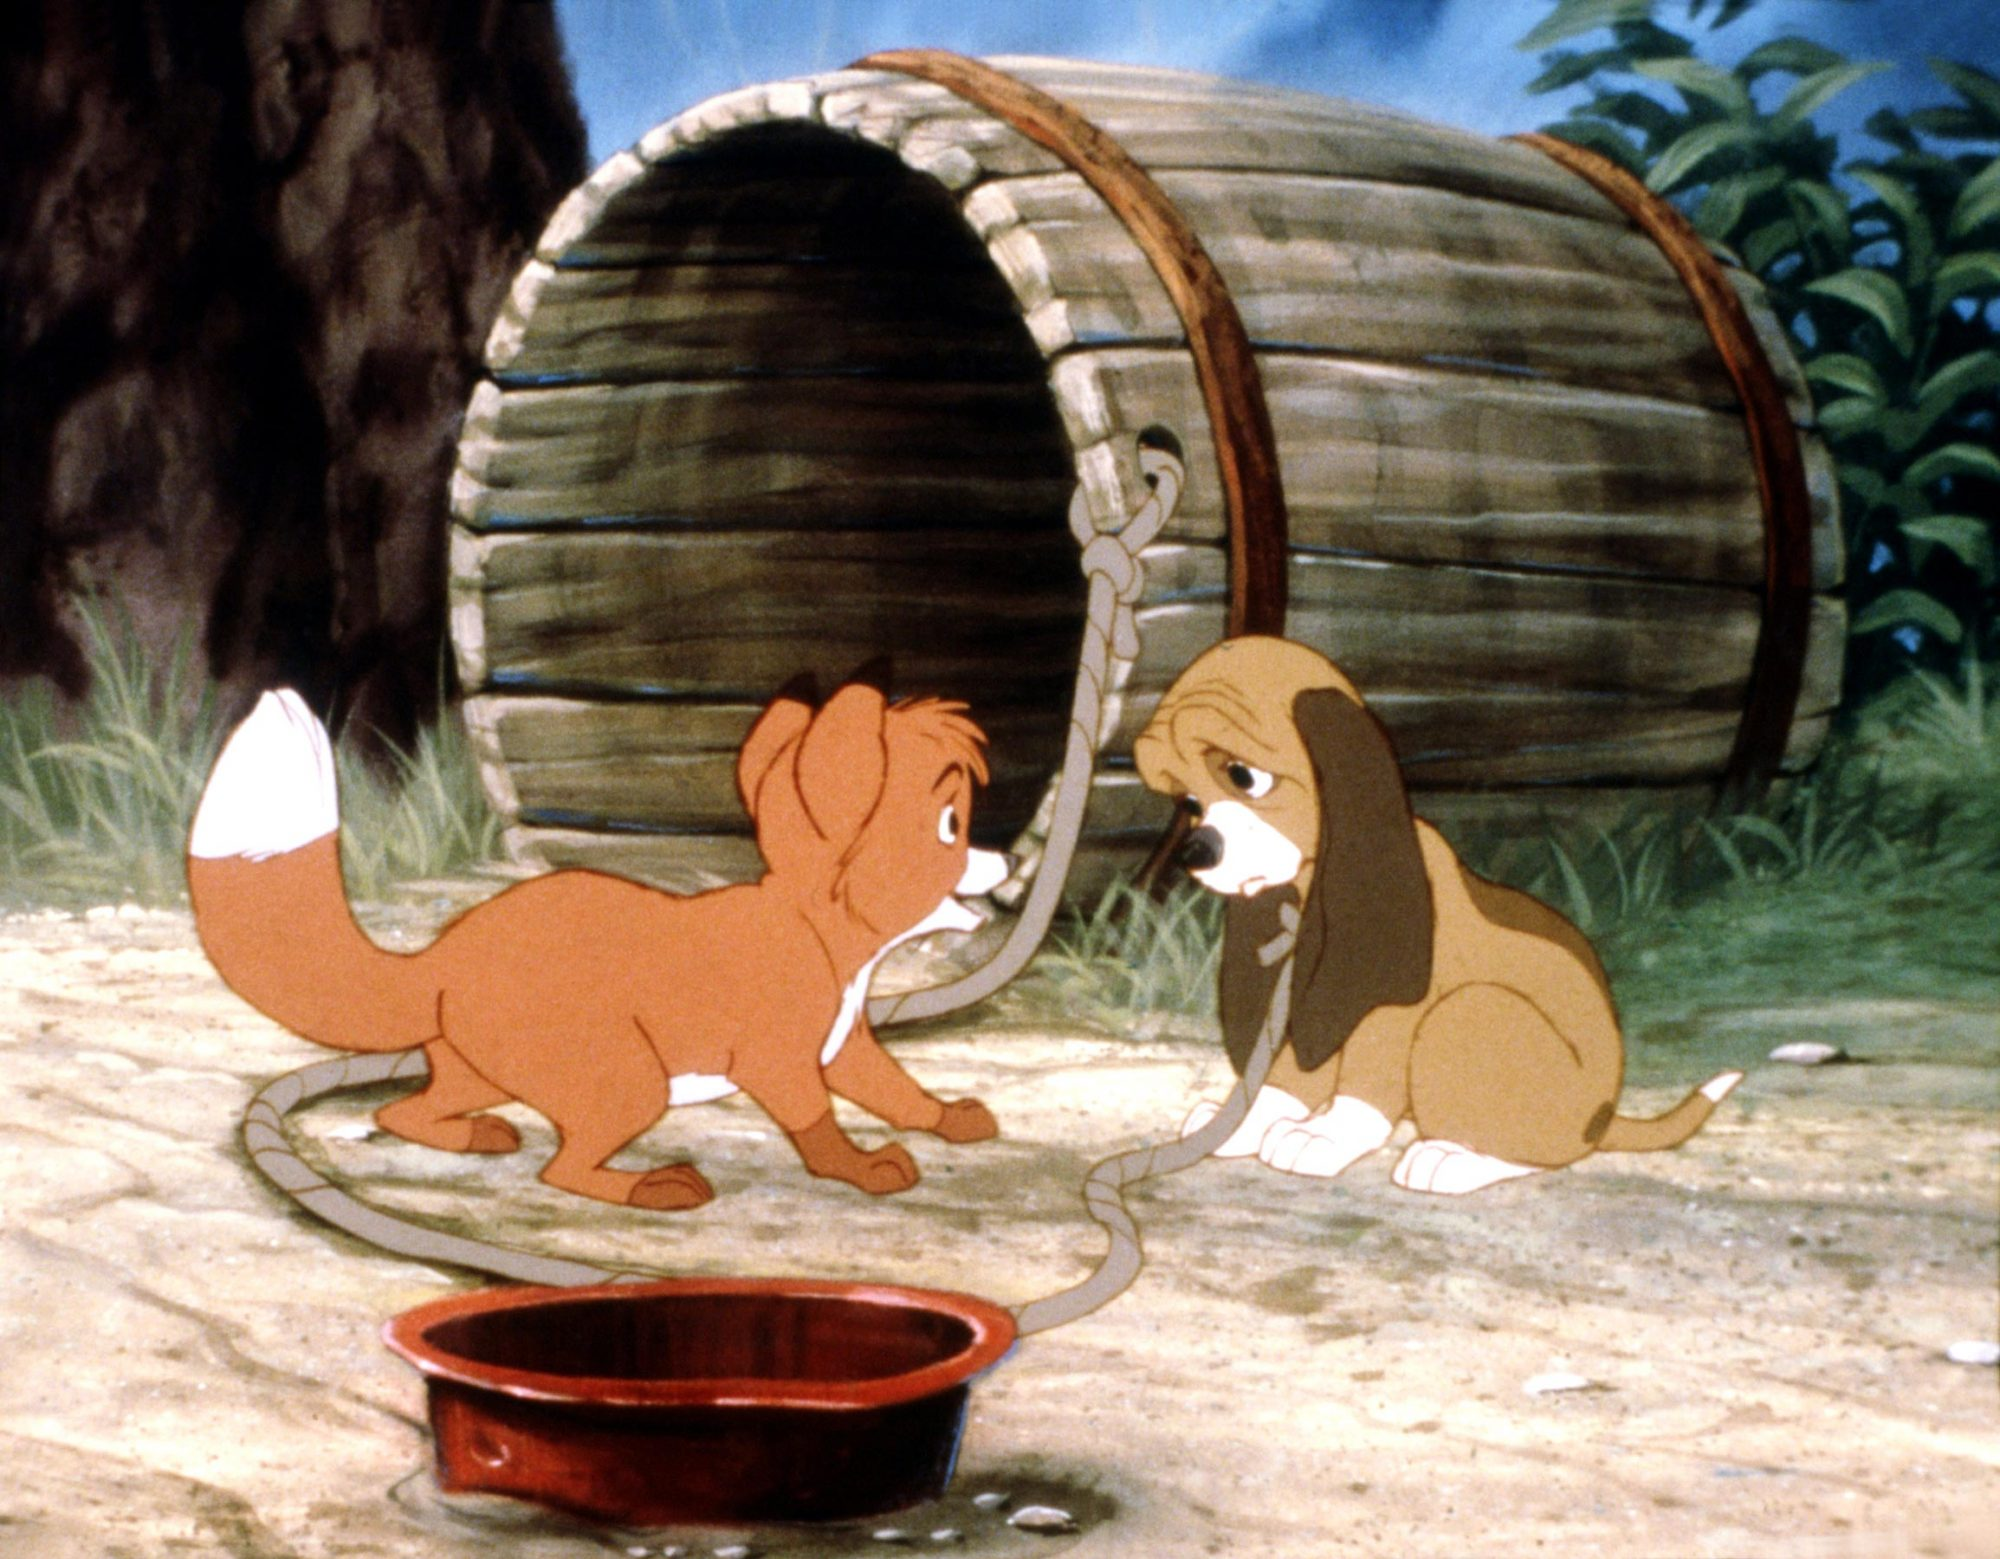 THE FOX AND THE HOUND, from left: Tod, Copper, 1981, © Buena Vista/courtesy Everett Collection